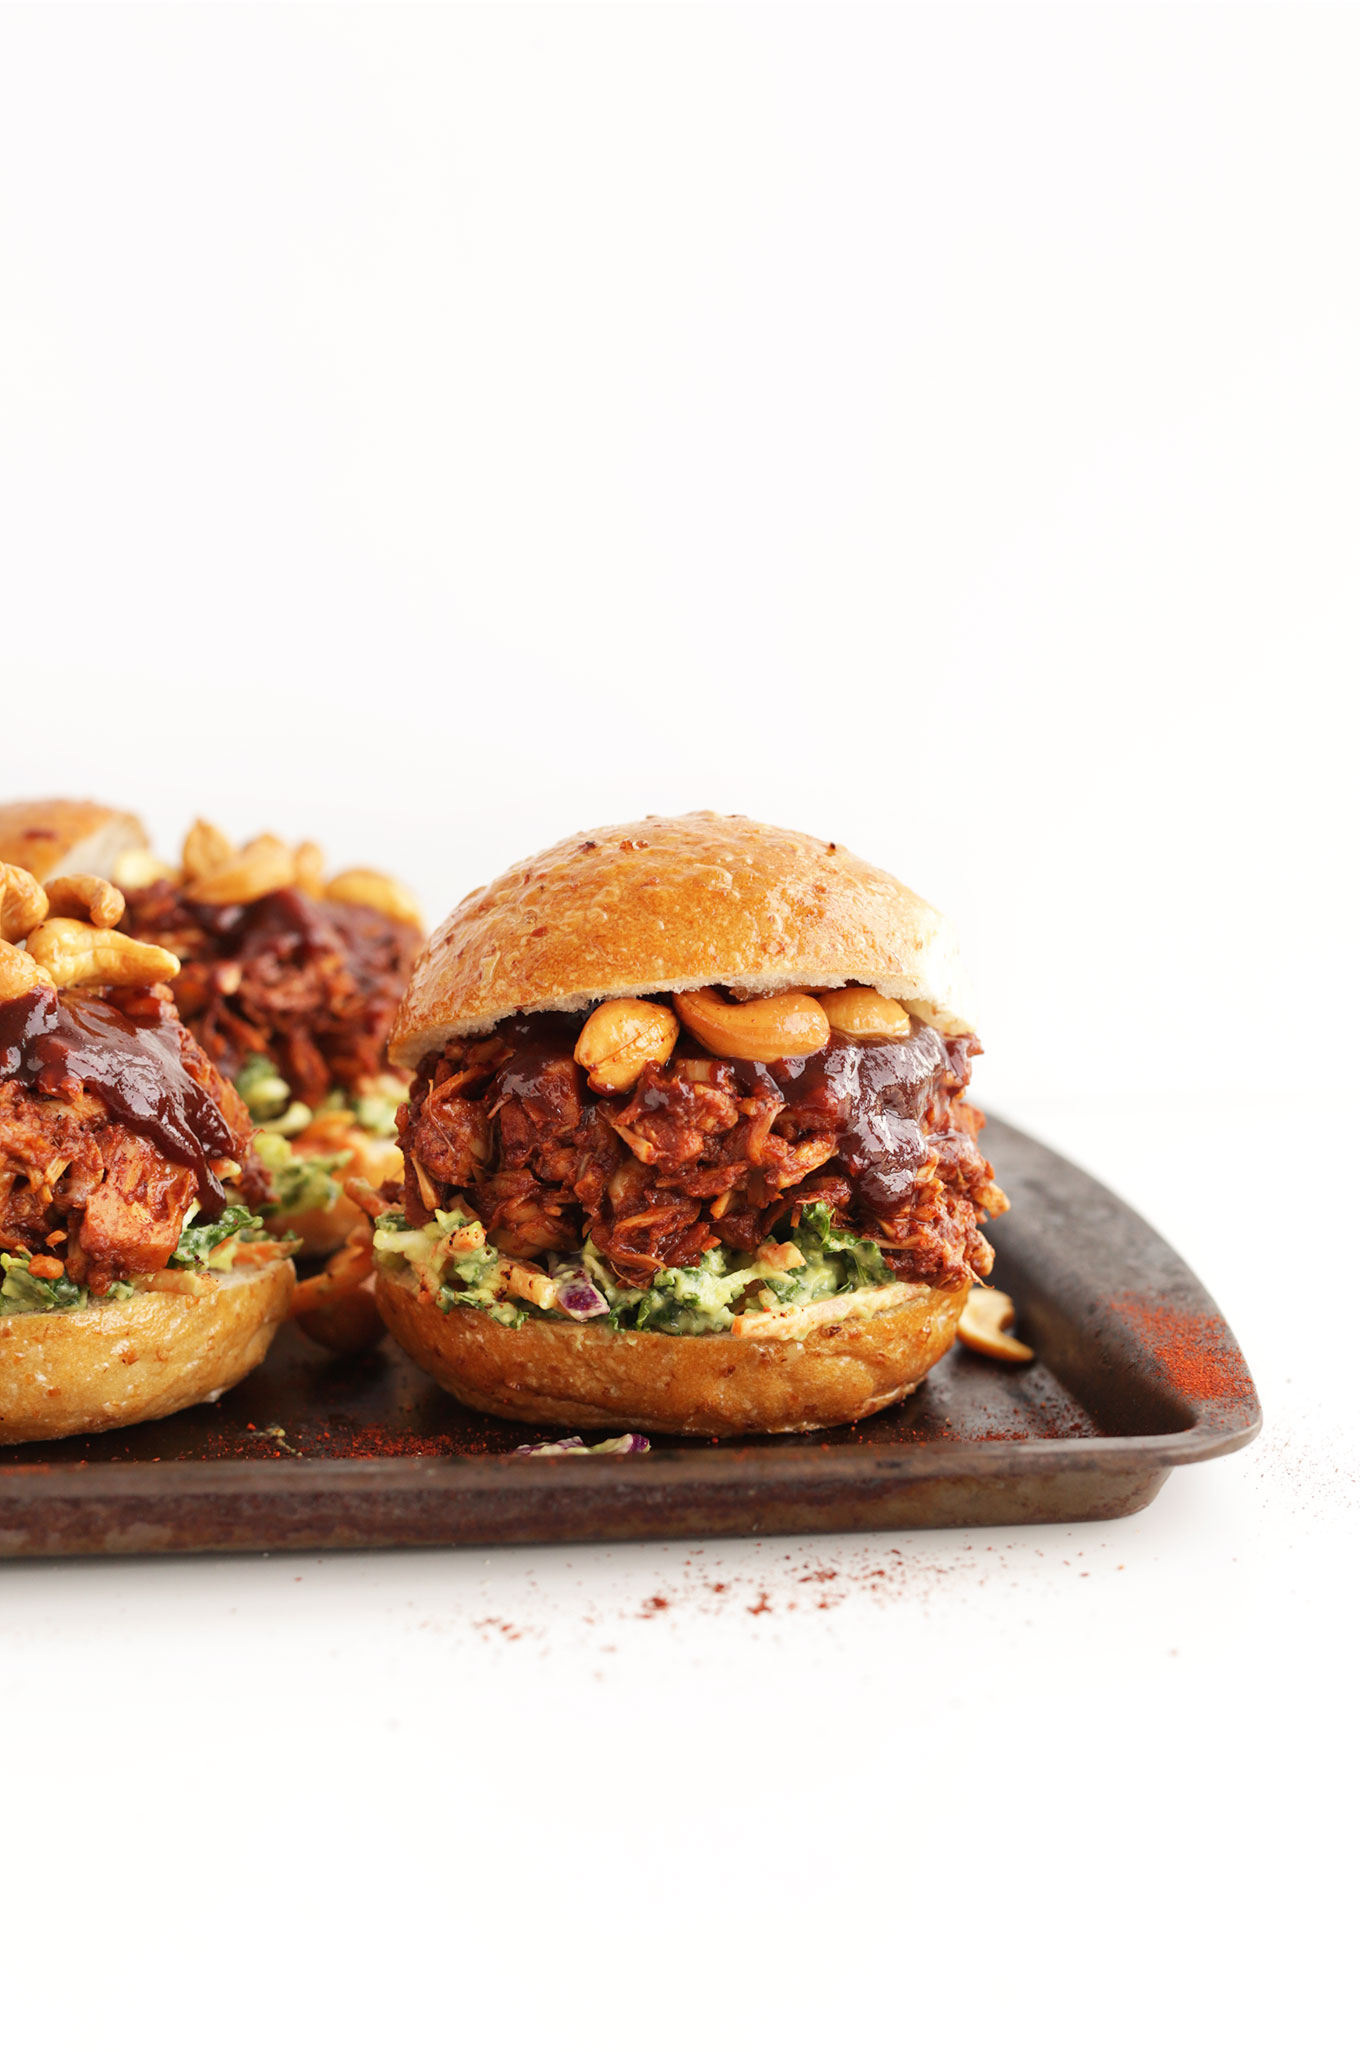 Baking sheet filled with our BBQ Jackfruit Sandwiches with Avocado Slaw and Roasted Cashews